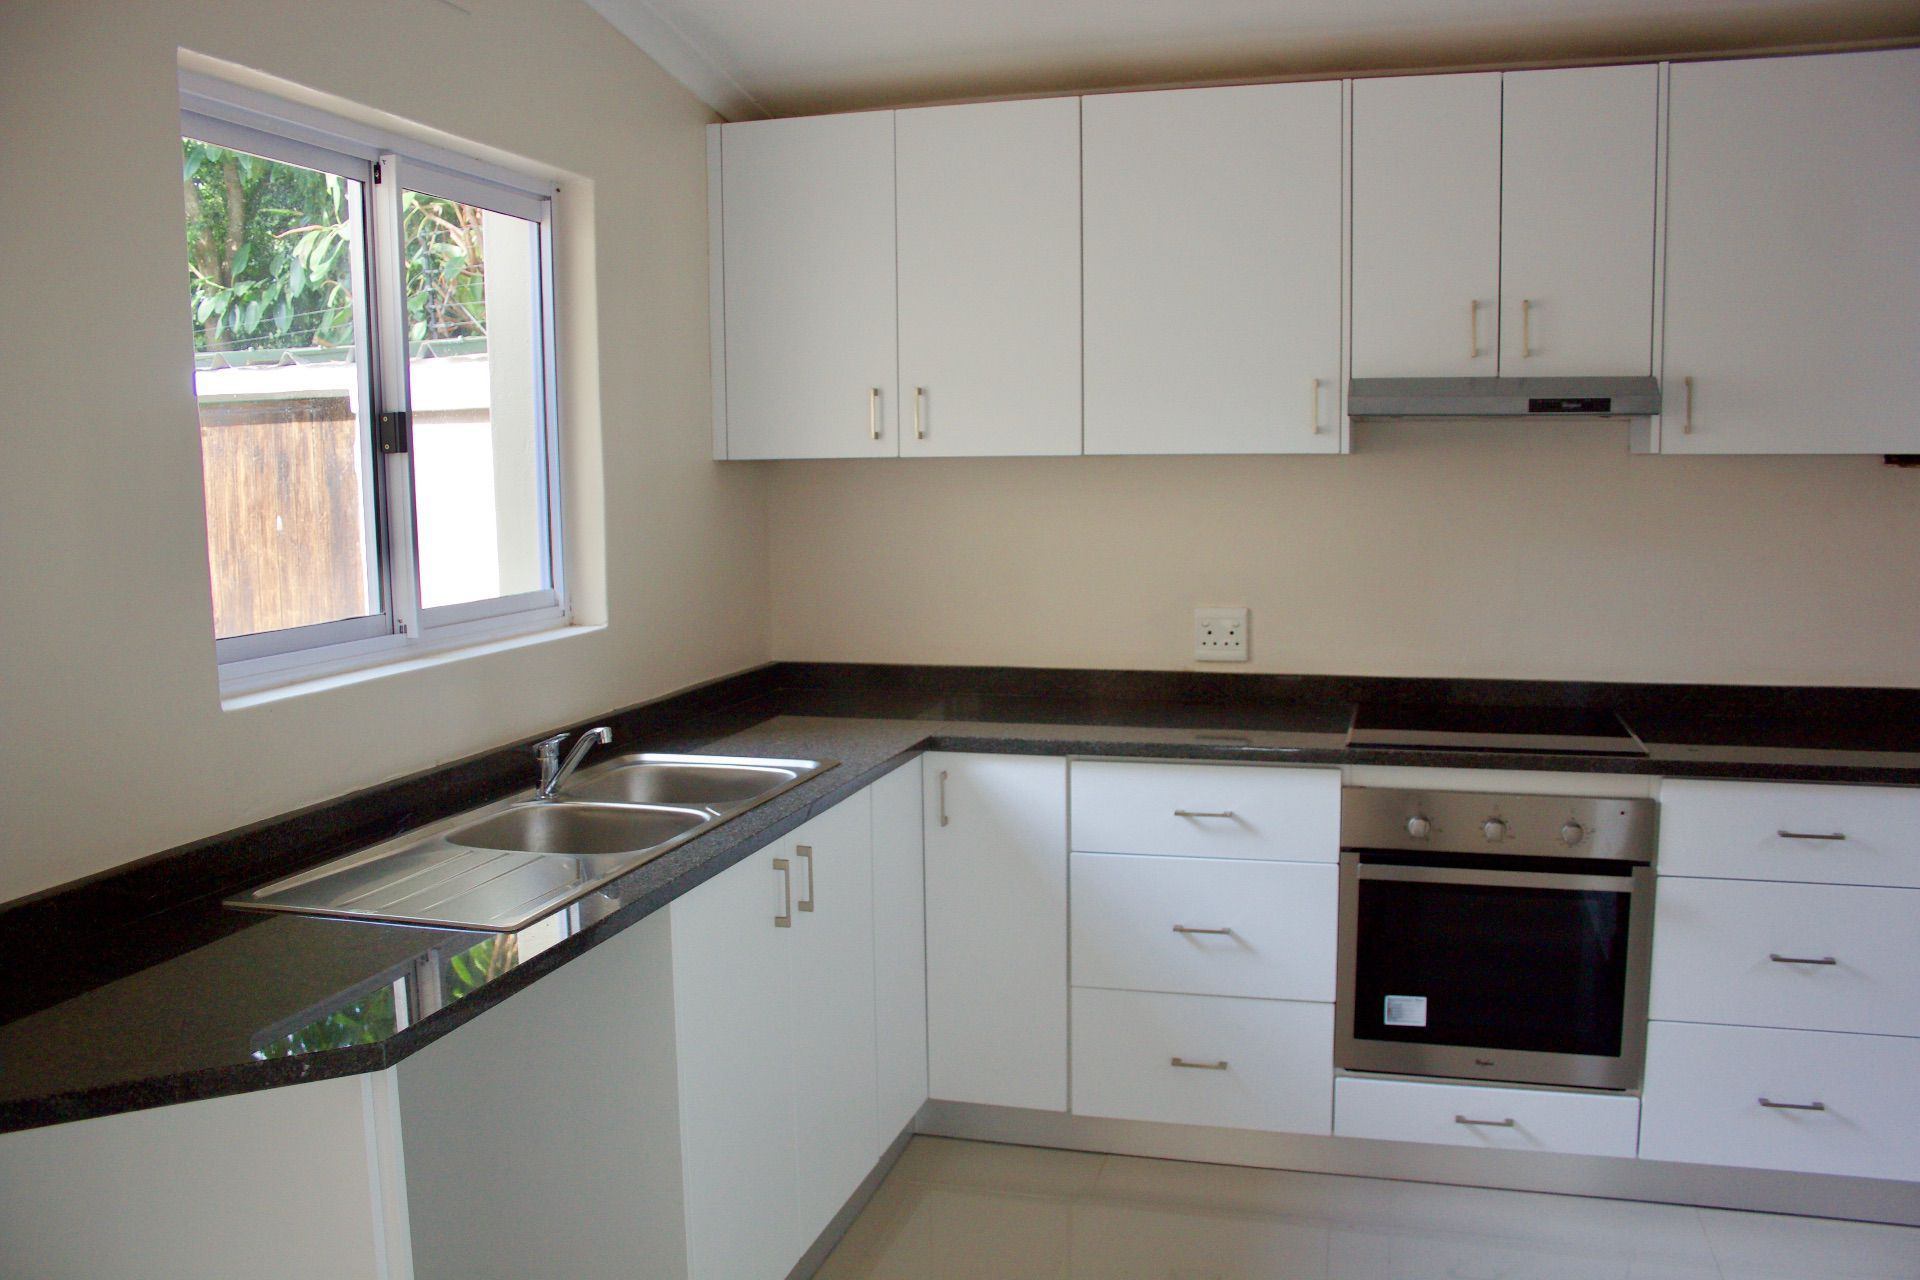 House in Hout Bay - kitchen 1